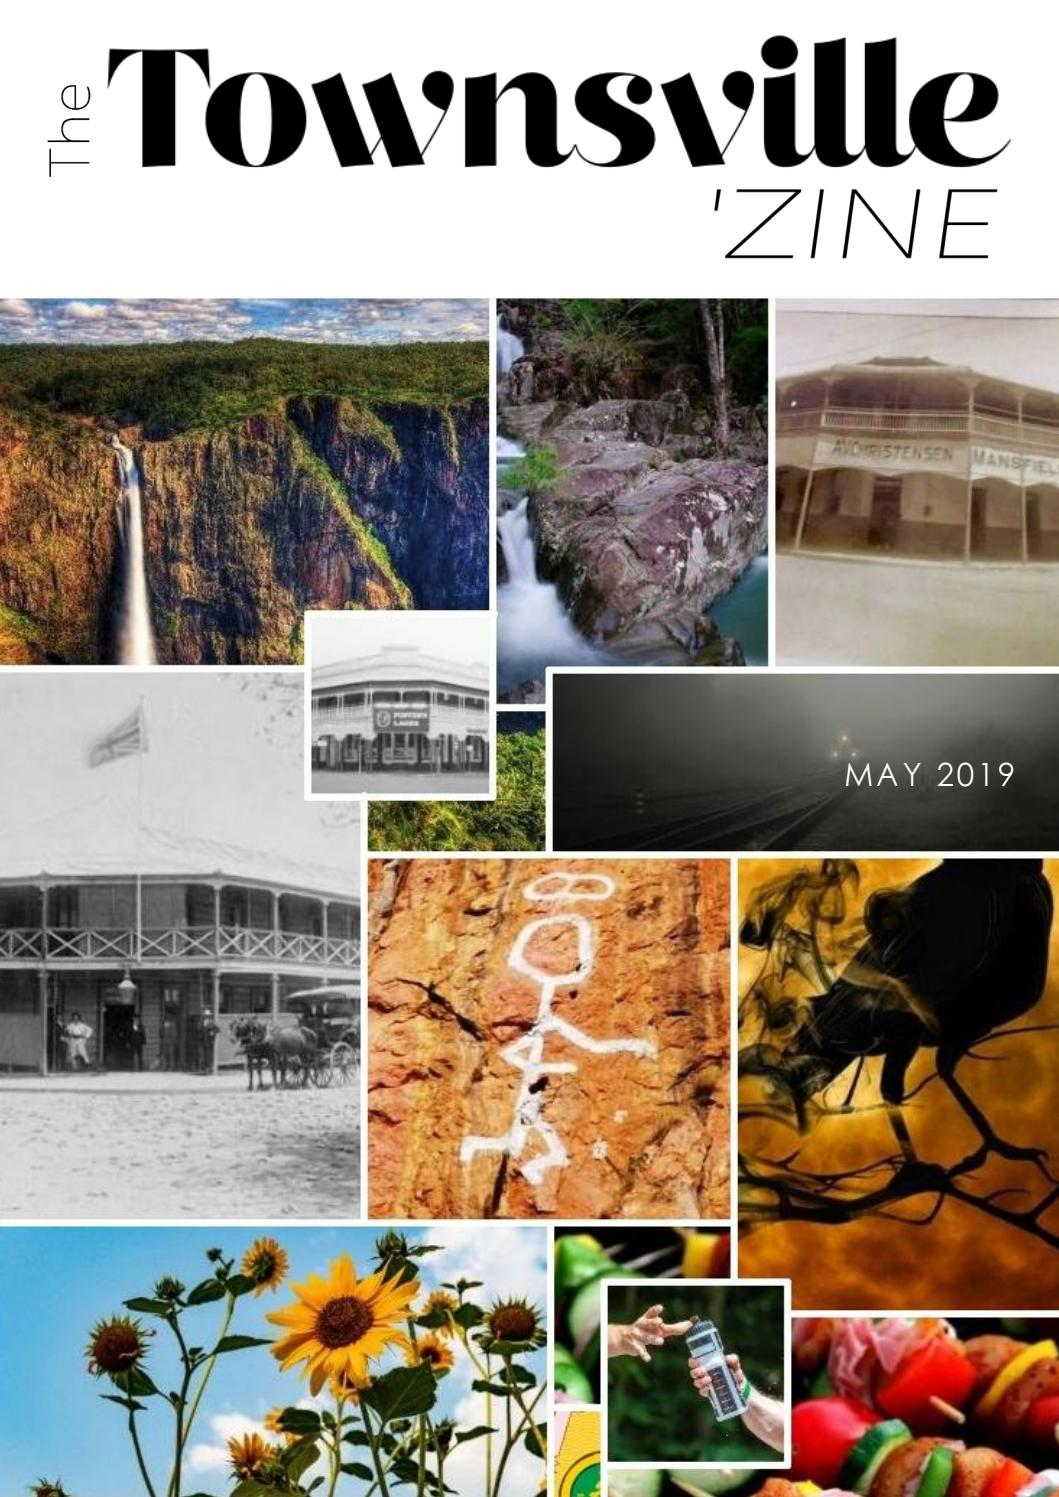 The Townsville Zine - May by The Townsville 'Zine - issuu